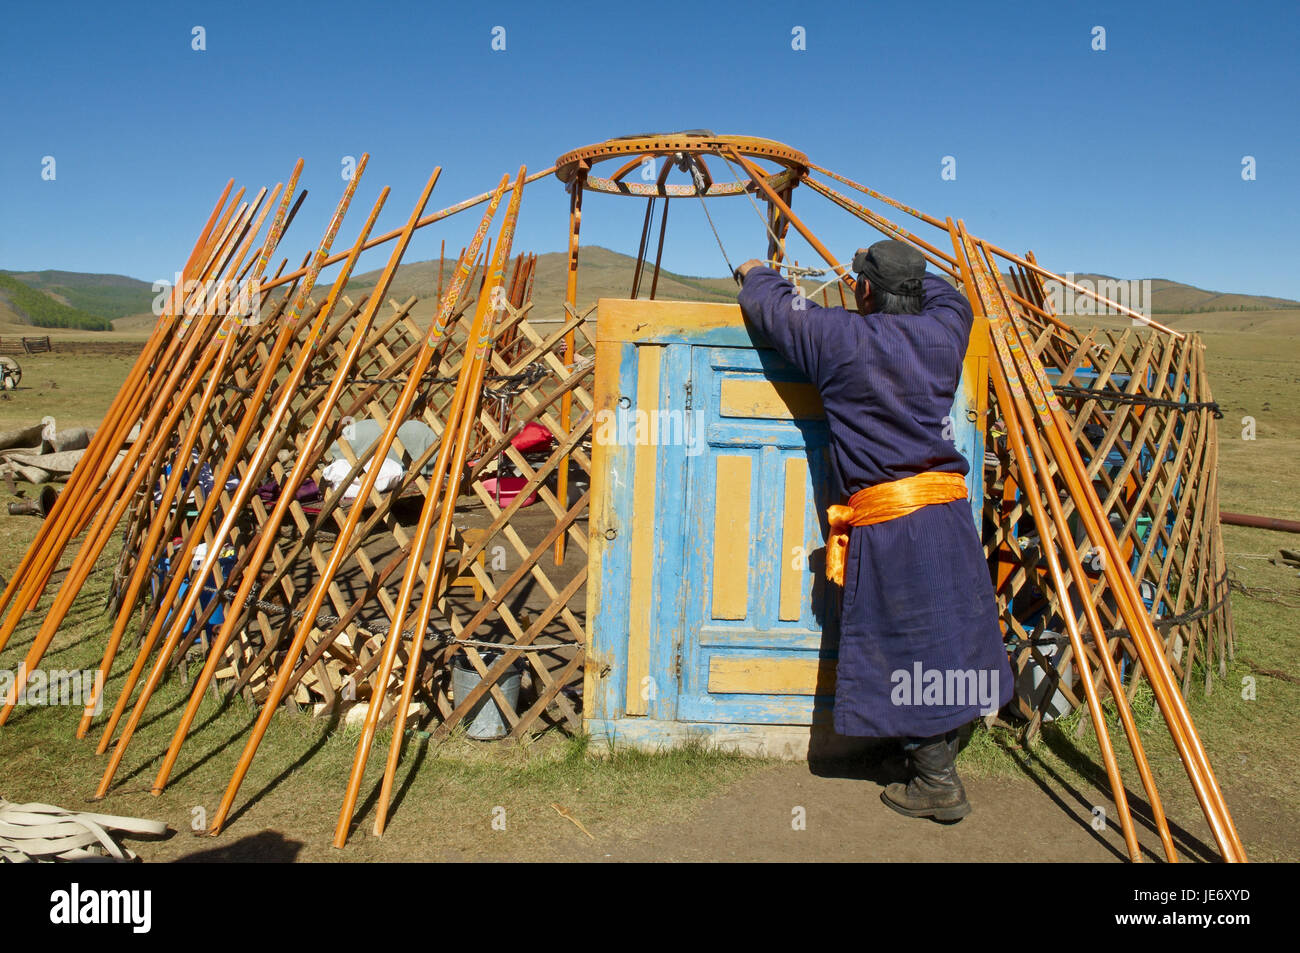 Mongolia, Central Asia, Arkhangai province, nomad, support, Jurte break down, - Stock Image